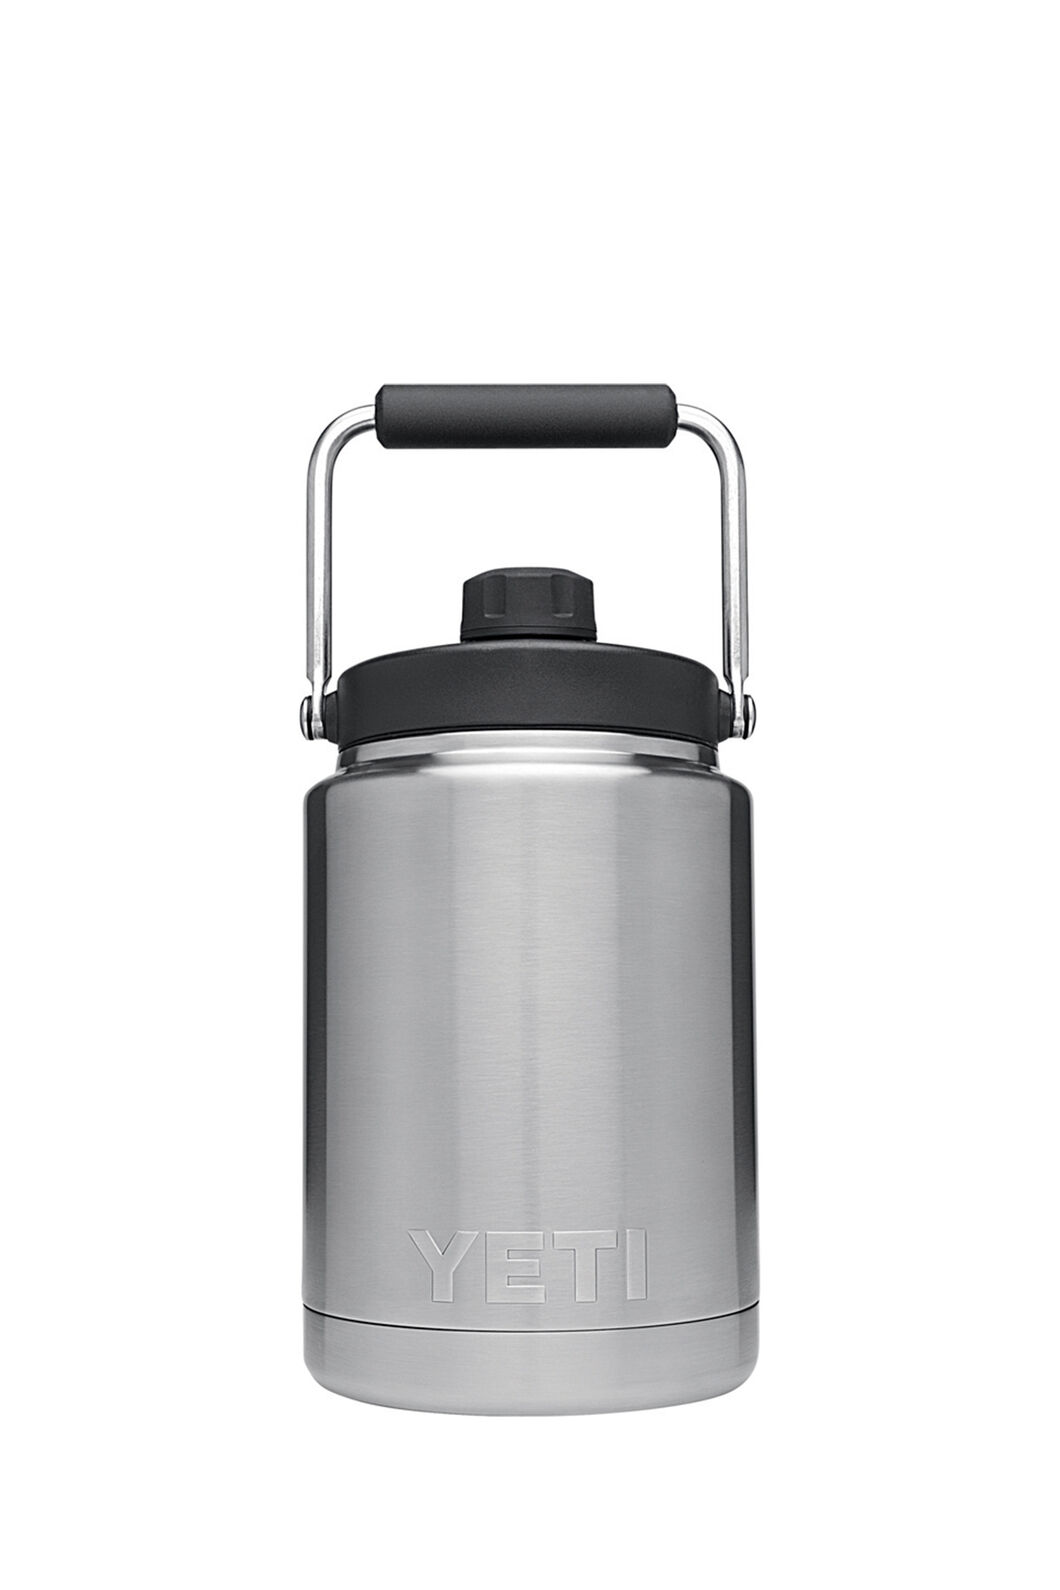 Yeti Rambler Stainless Steel Jug8oz, None, hi-res